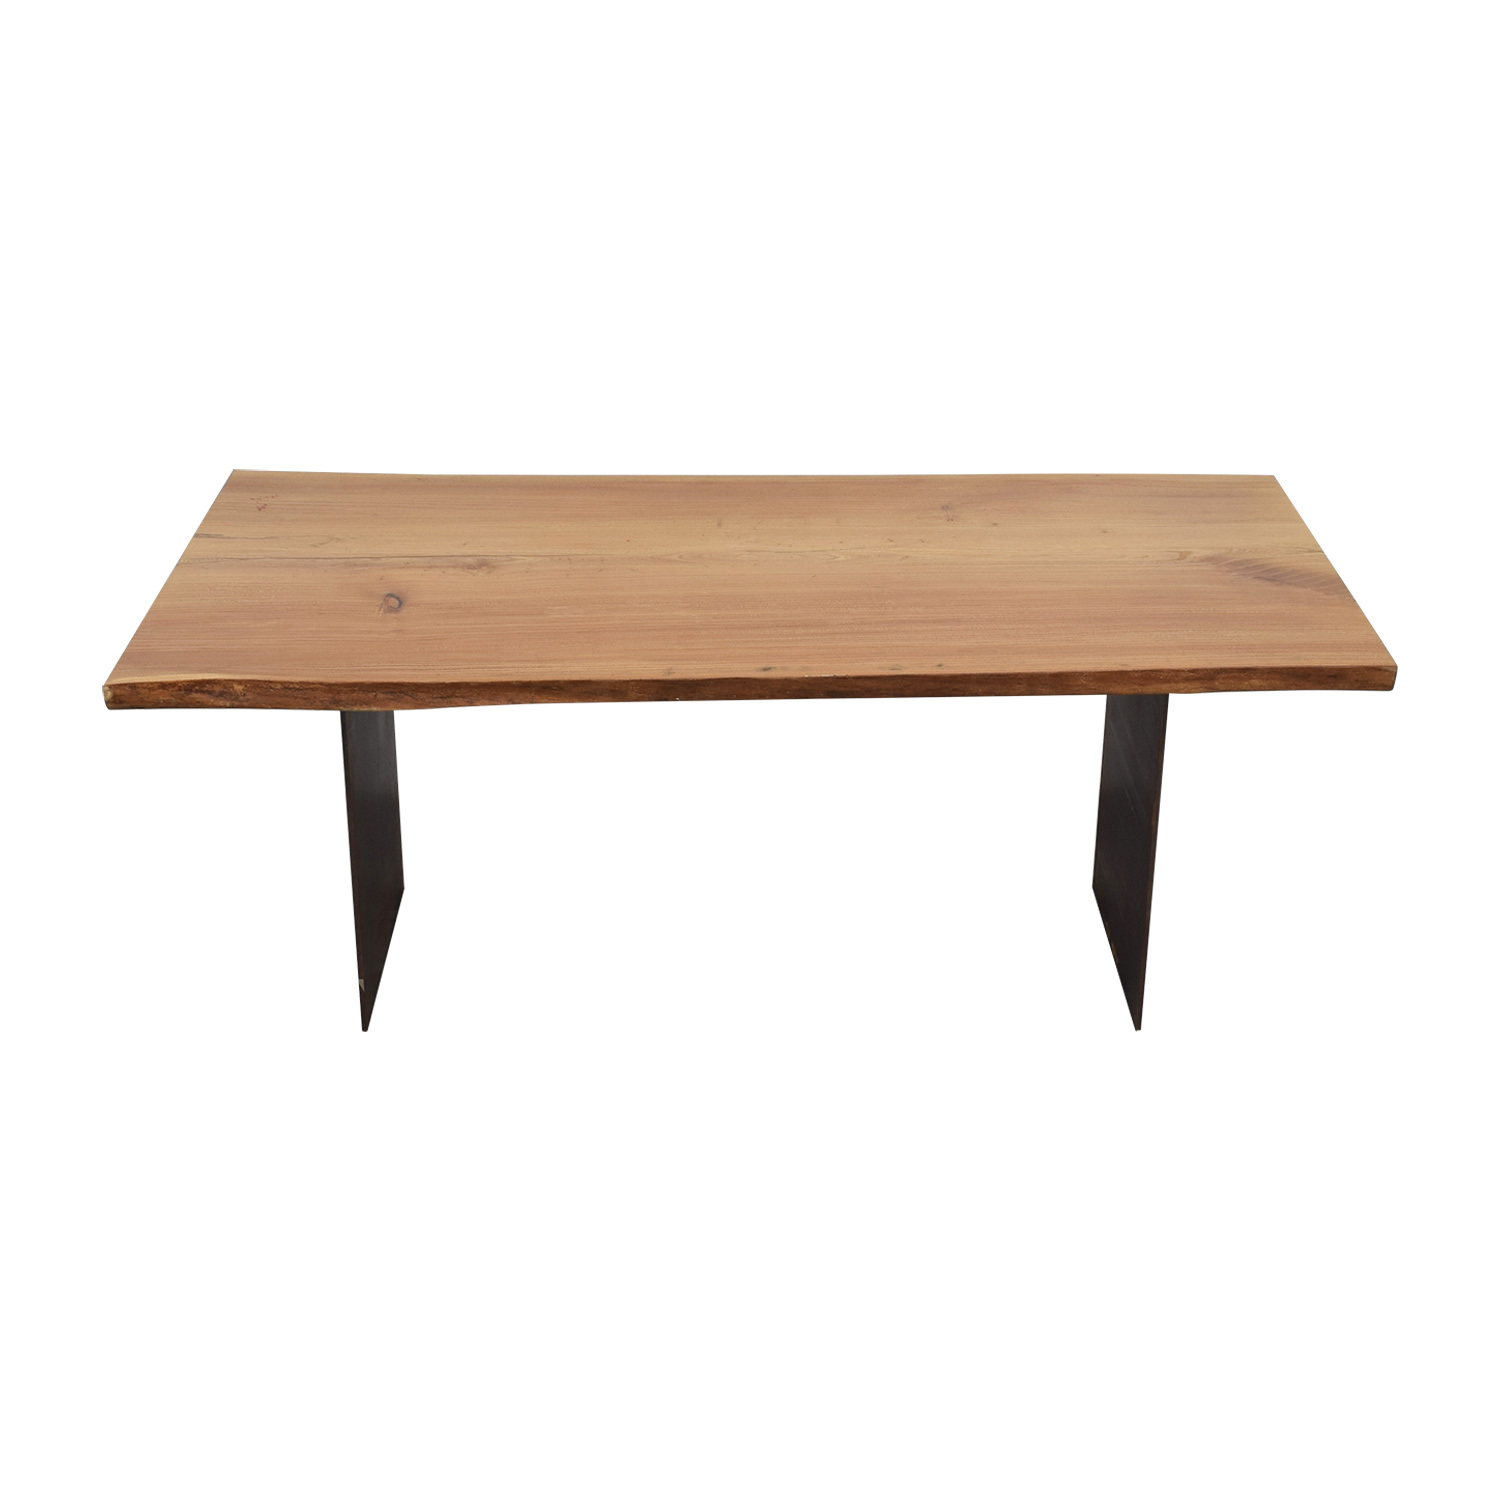 Urban Hardwoods Urban Hardwoods Red Elm Slab Wood Dining Table for sale